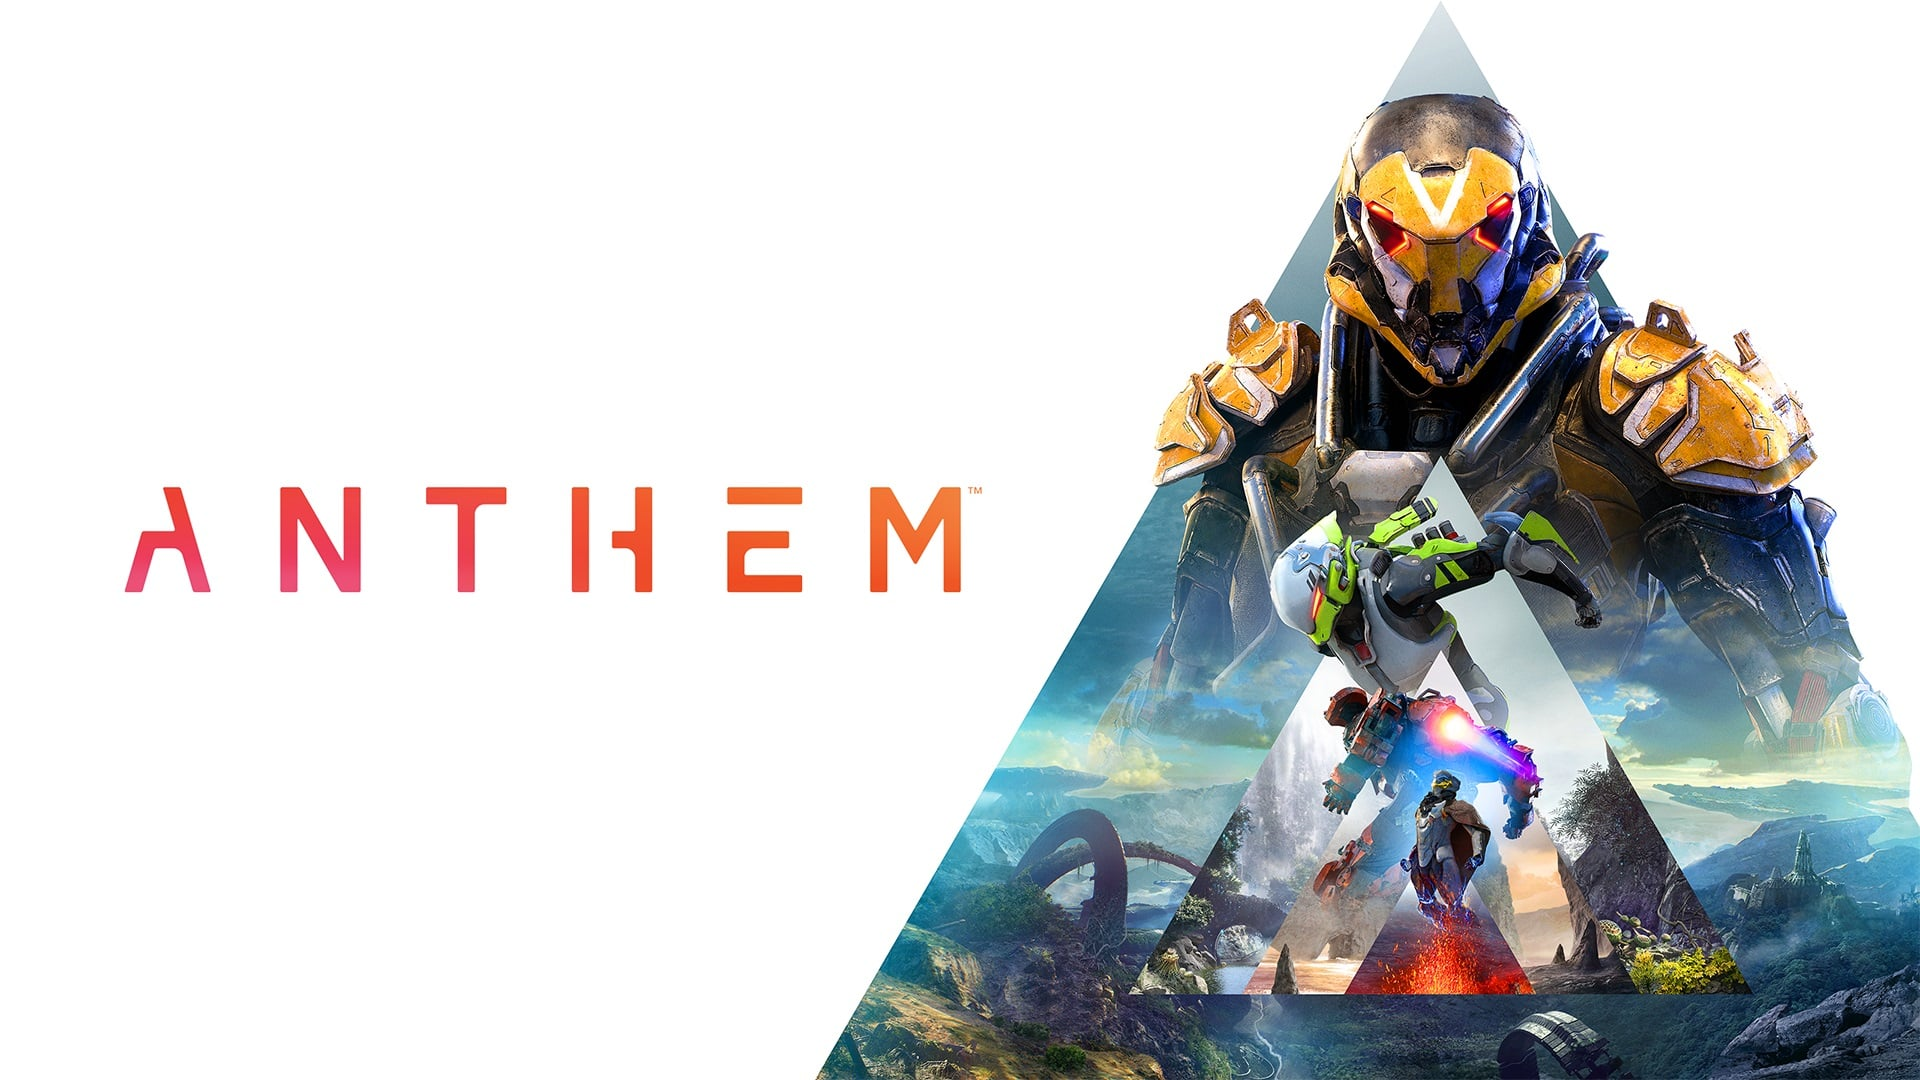 EA CEO: BioWare Will Eventually Get Anthem to be Something